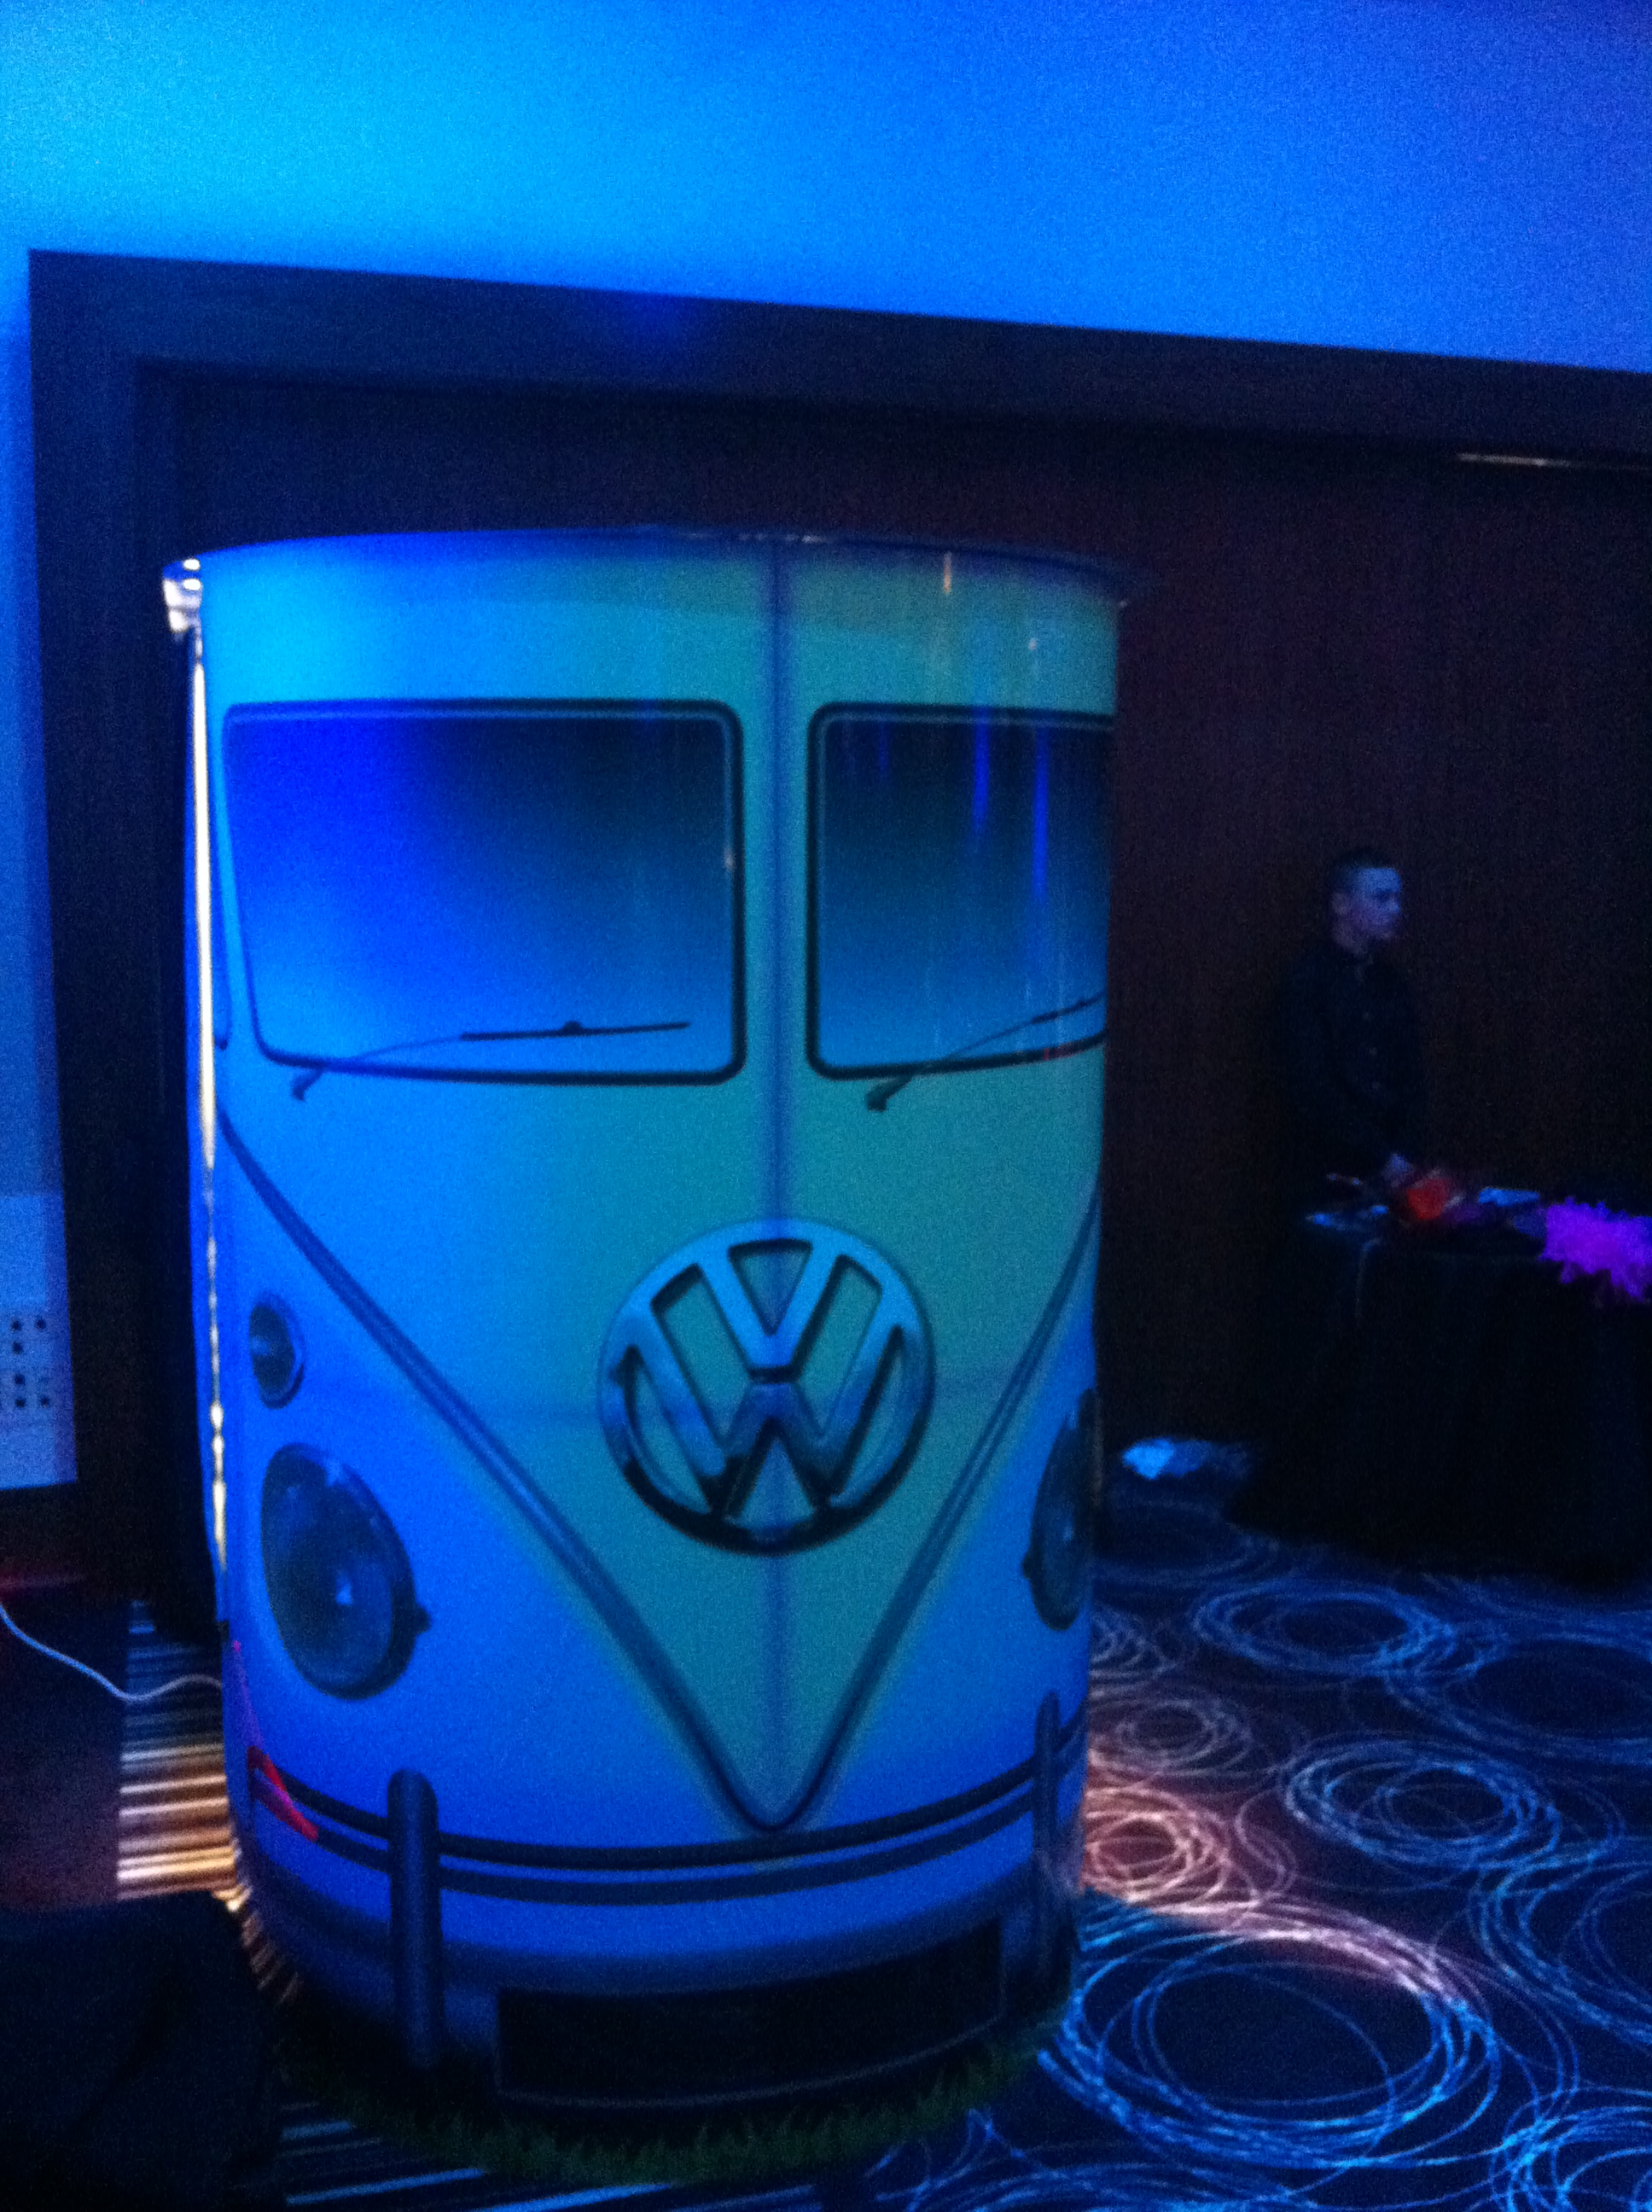 VW Camper Photo Booth